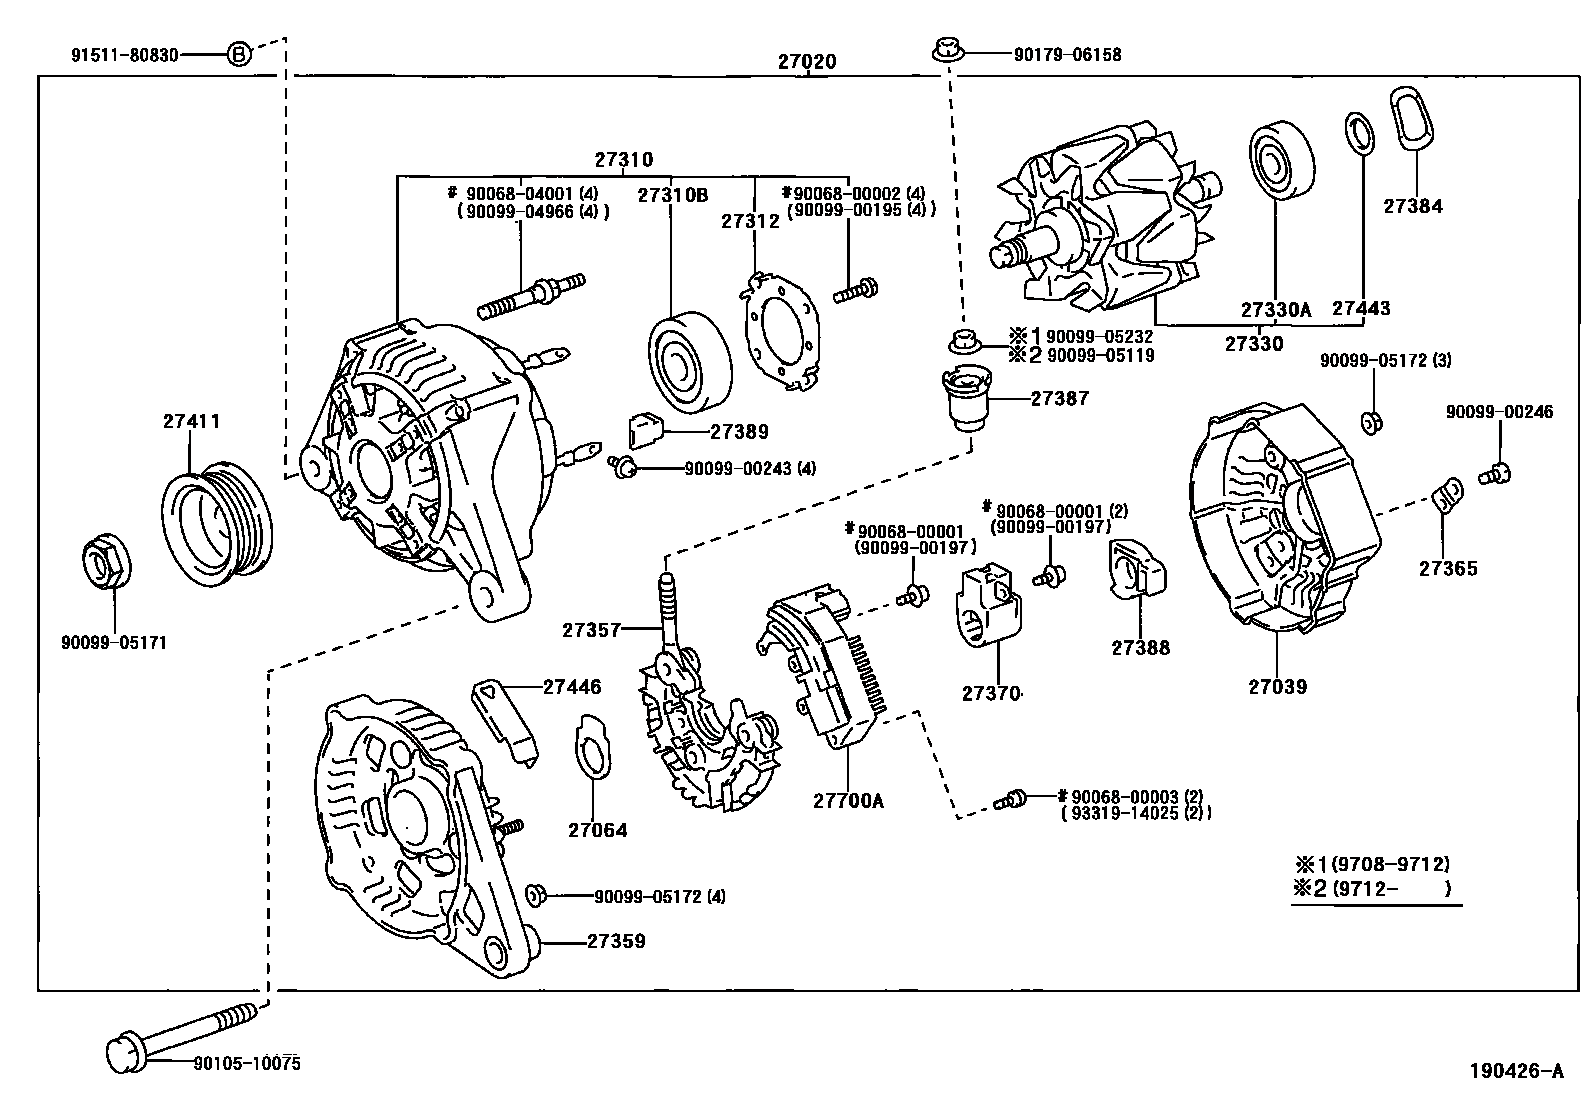 Subaru Outback Fuse Box Location on 1997 subaru legacy fuse diagram